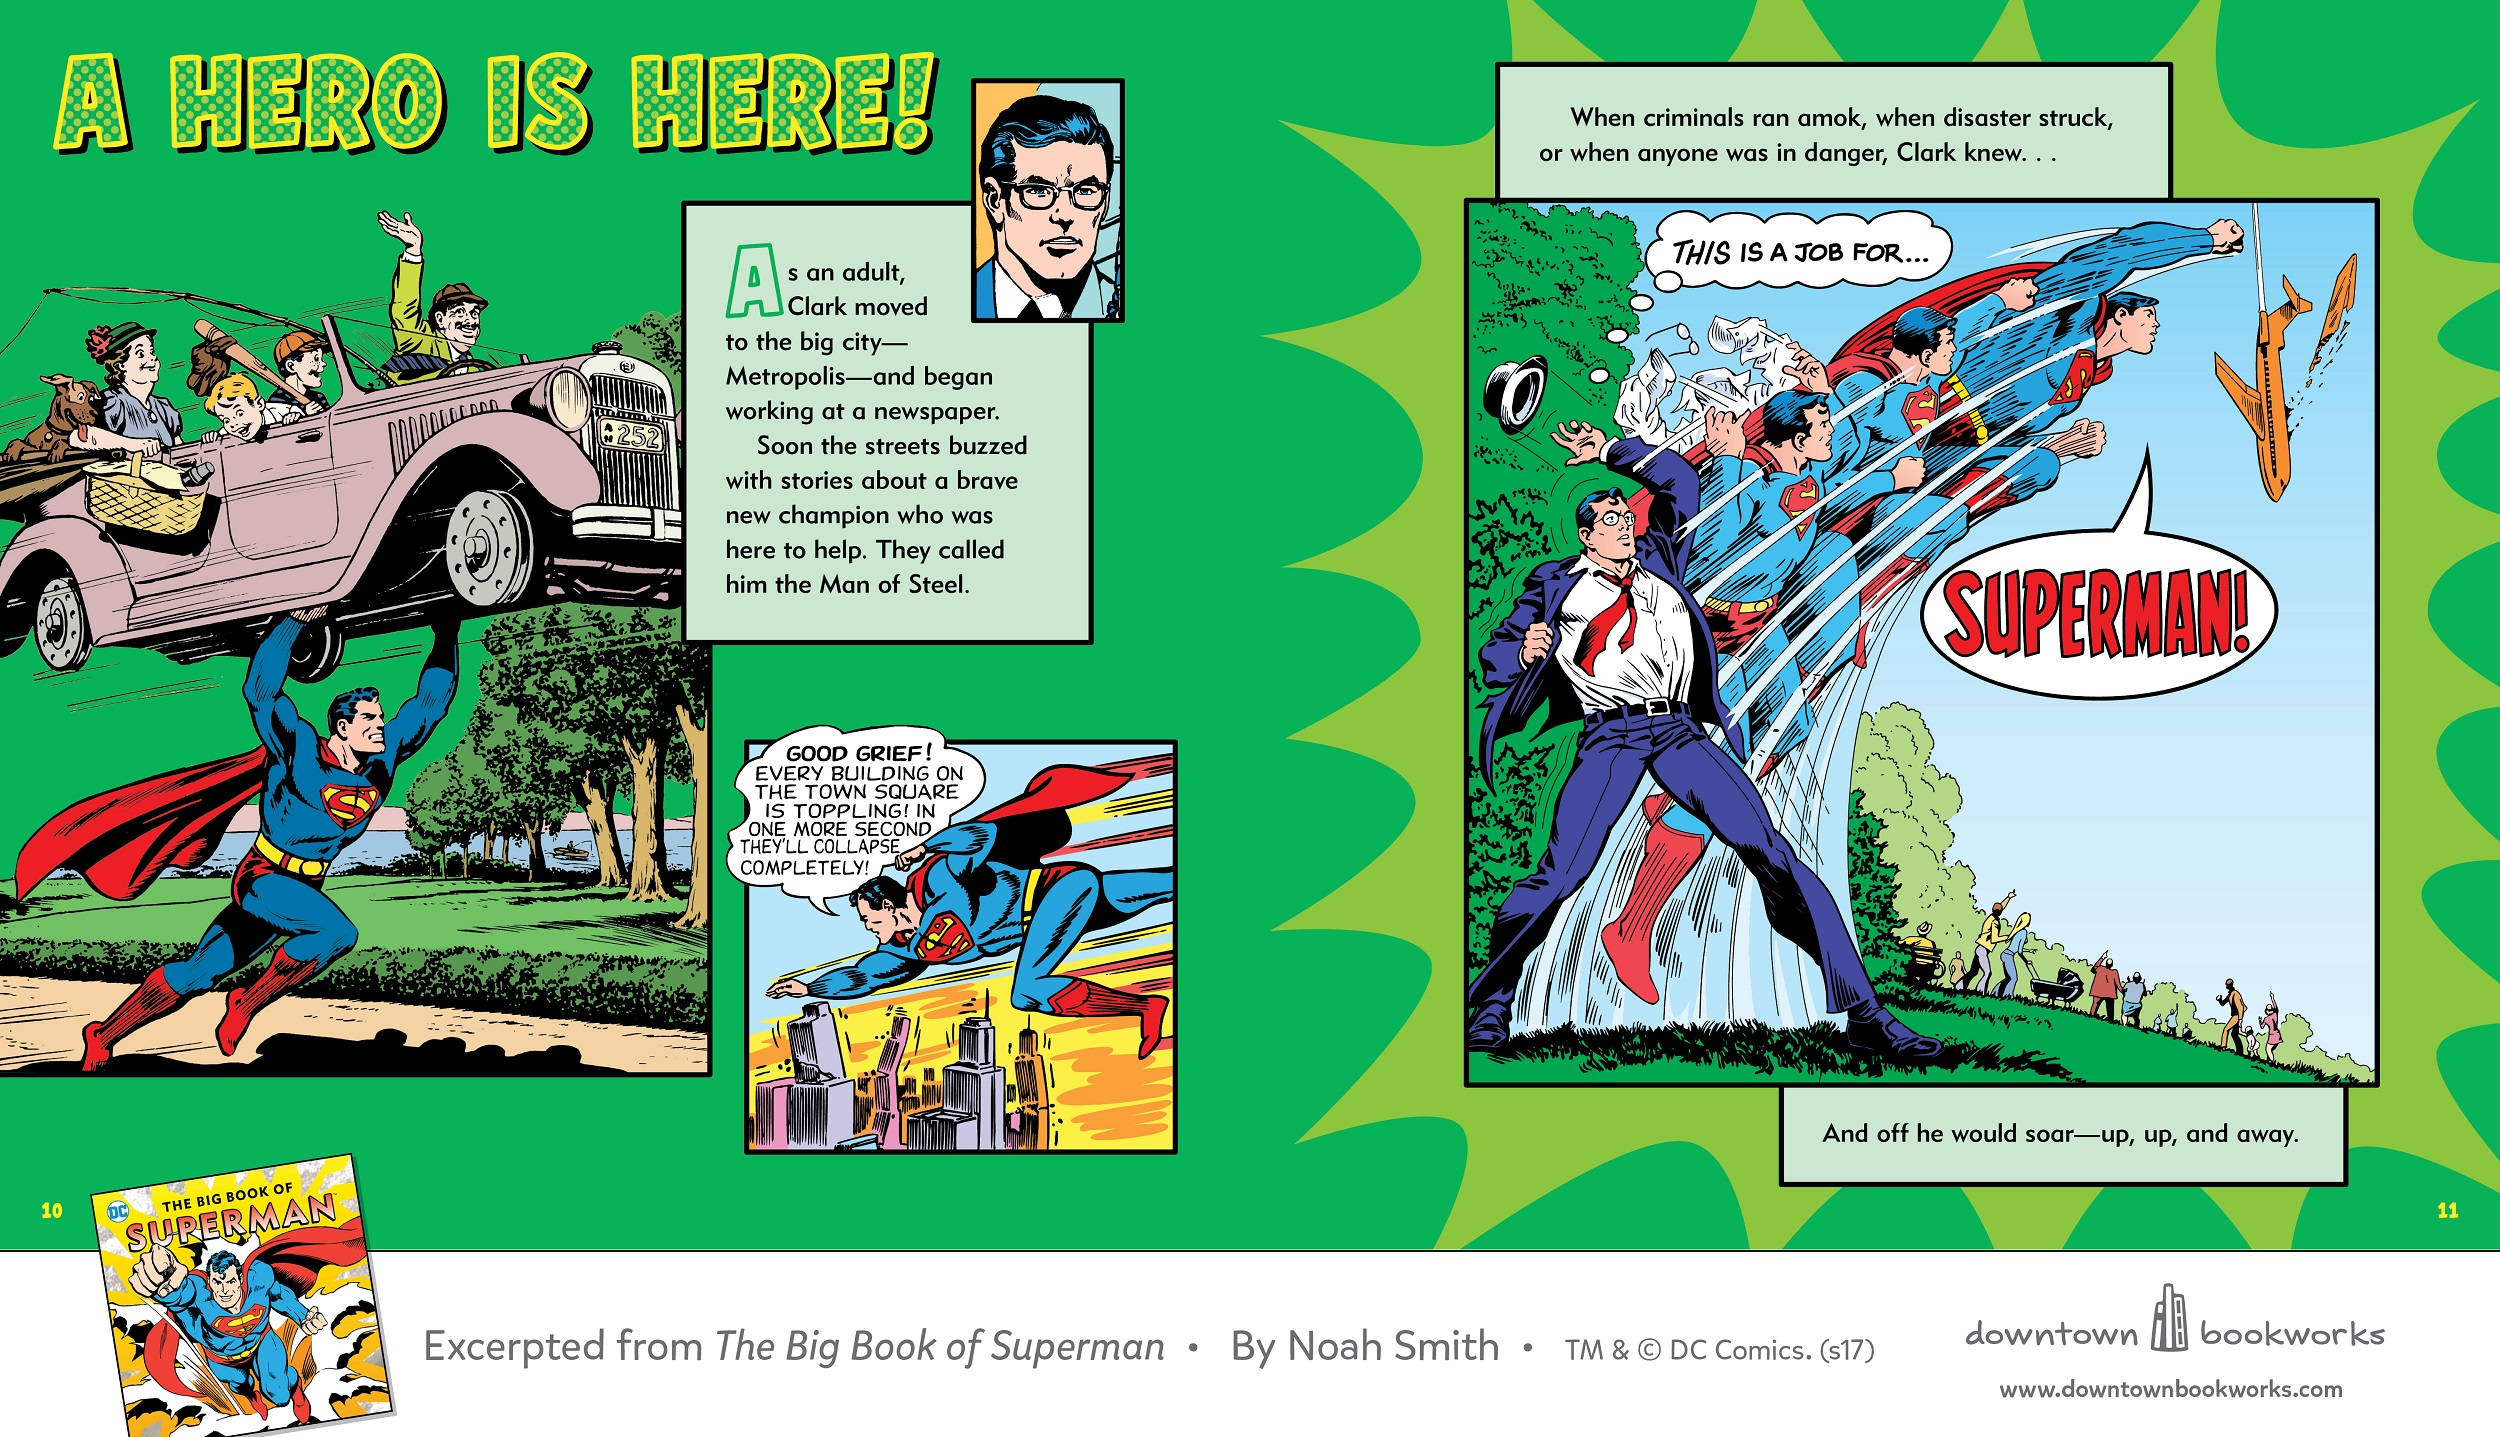 Clark Kent The Big Book of Superman review Downtown Bookworks